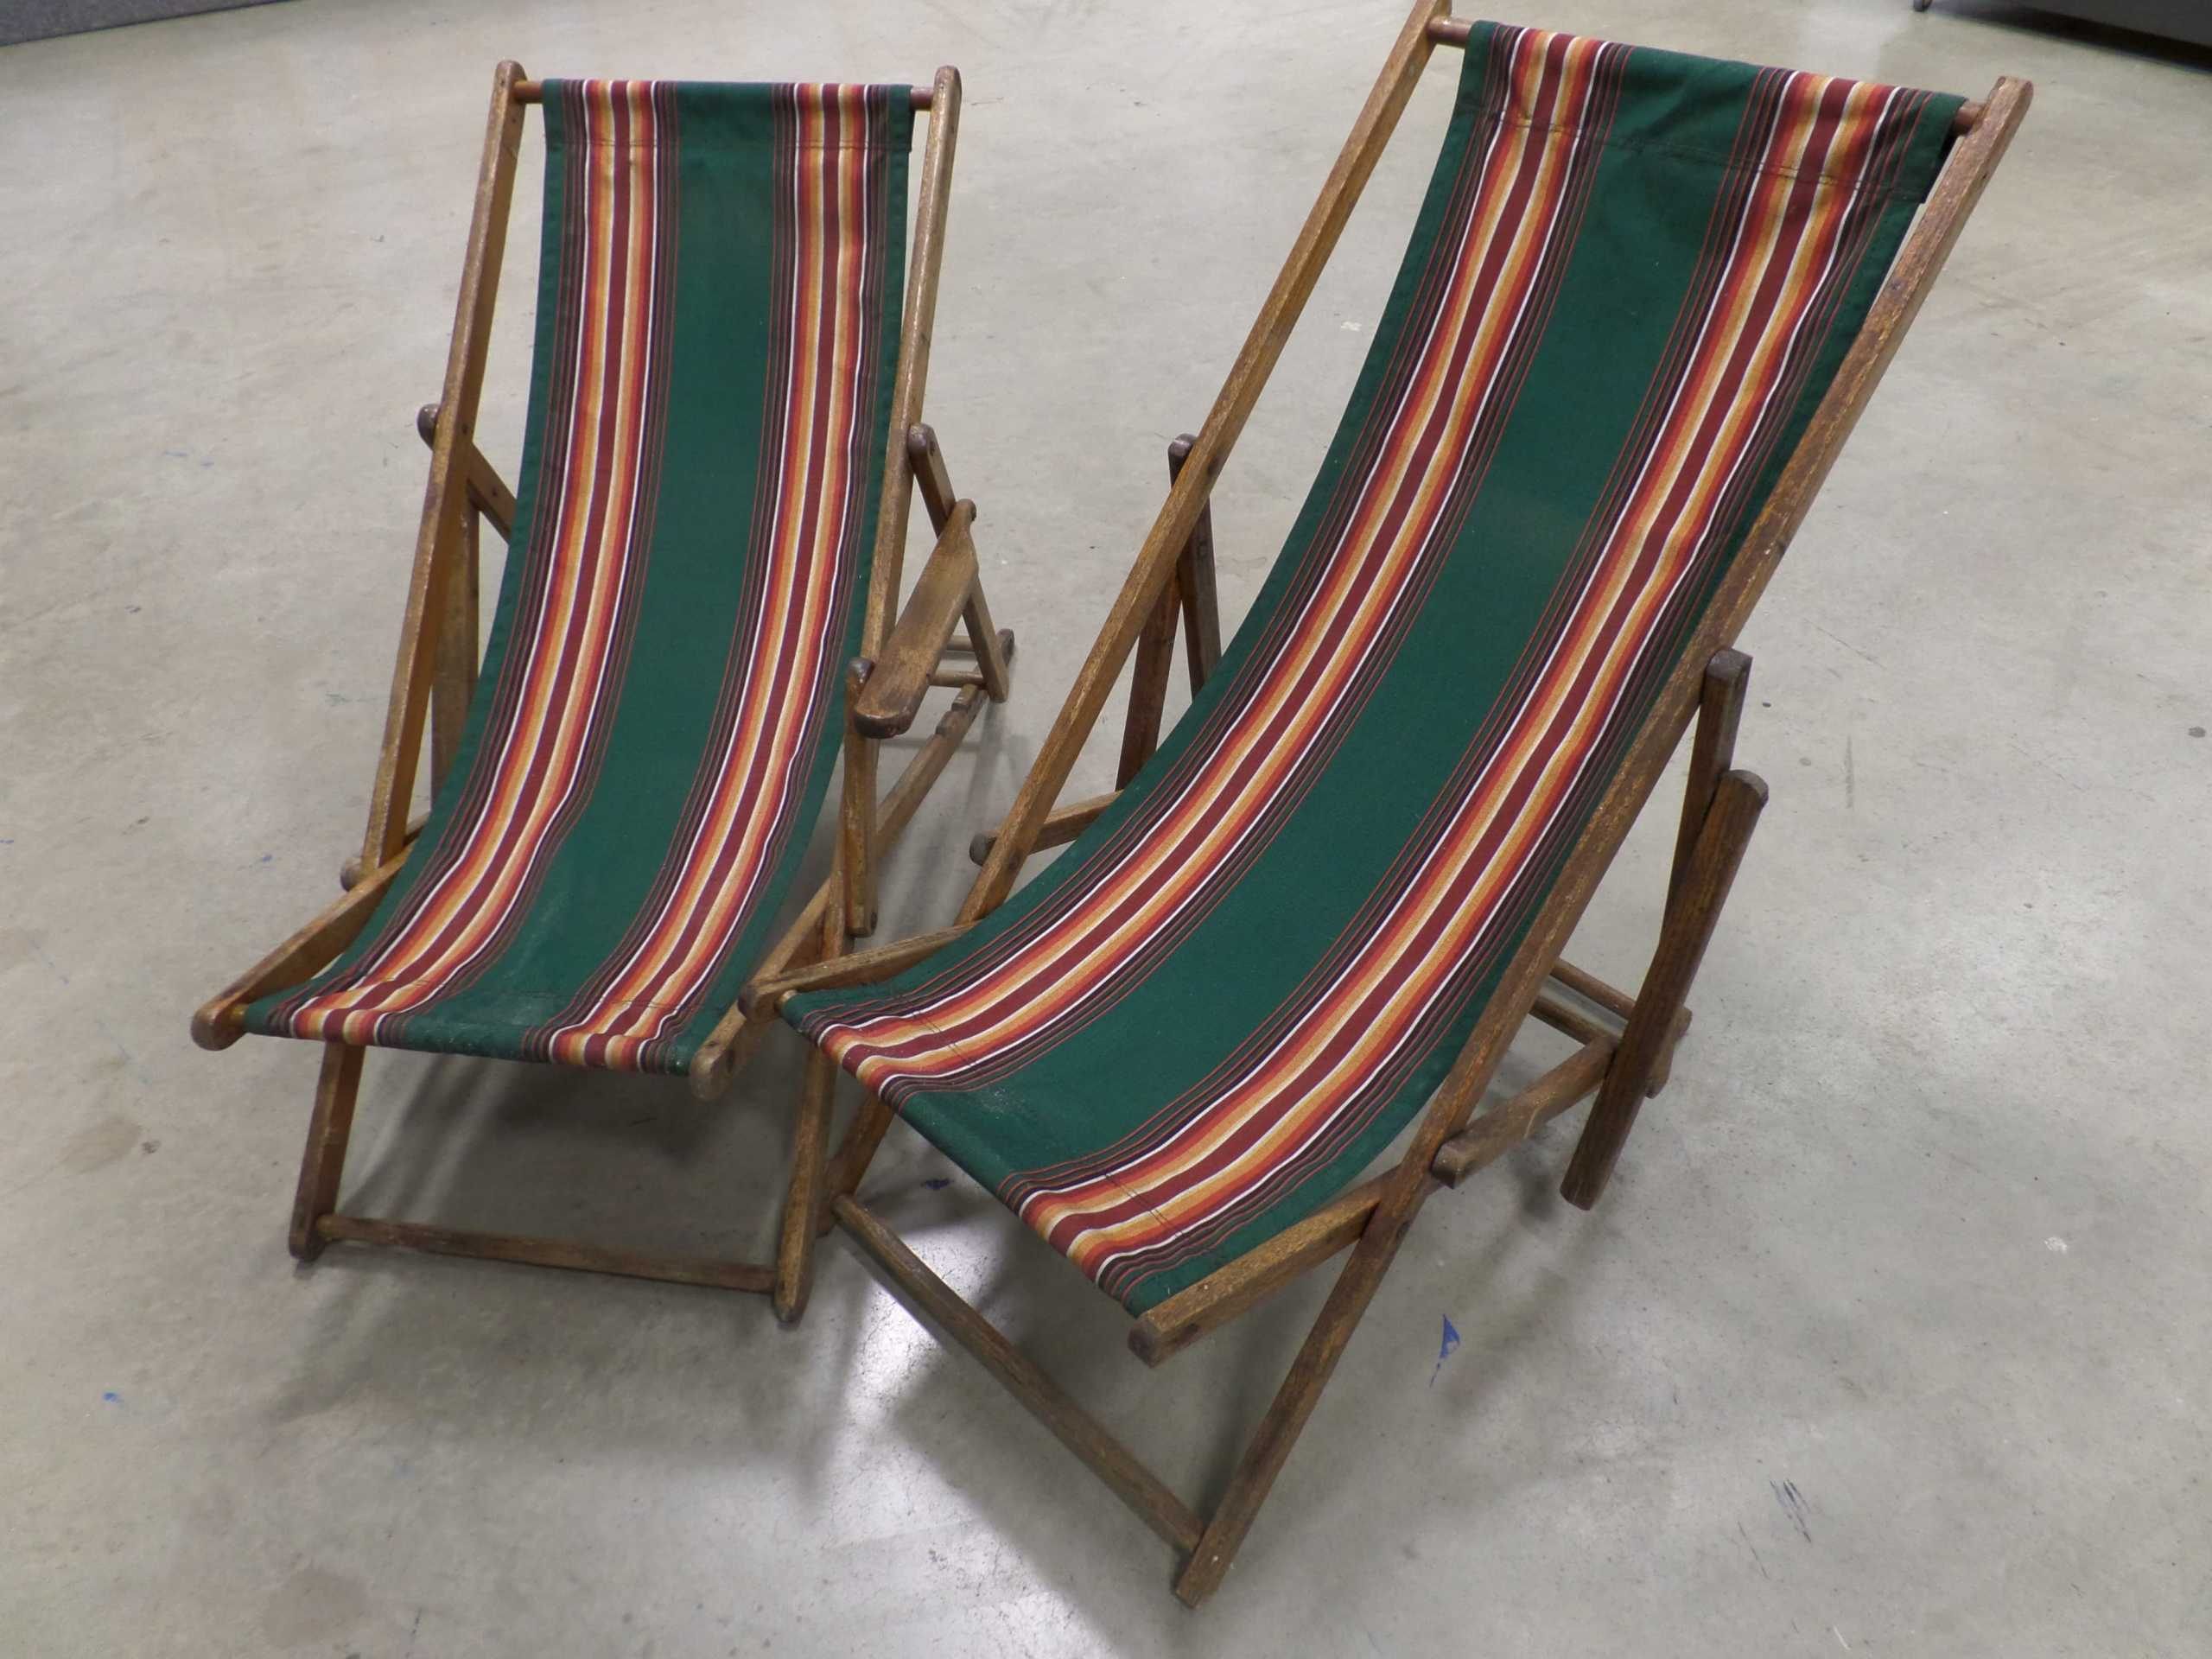 VINTAGE BEACH CHAIRS <br/> Donated by: KEITH WALKER <br/> Valued at: $240 <br/> Buy It Now: $60